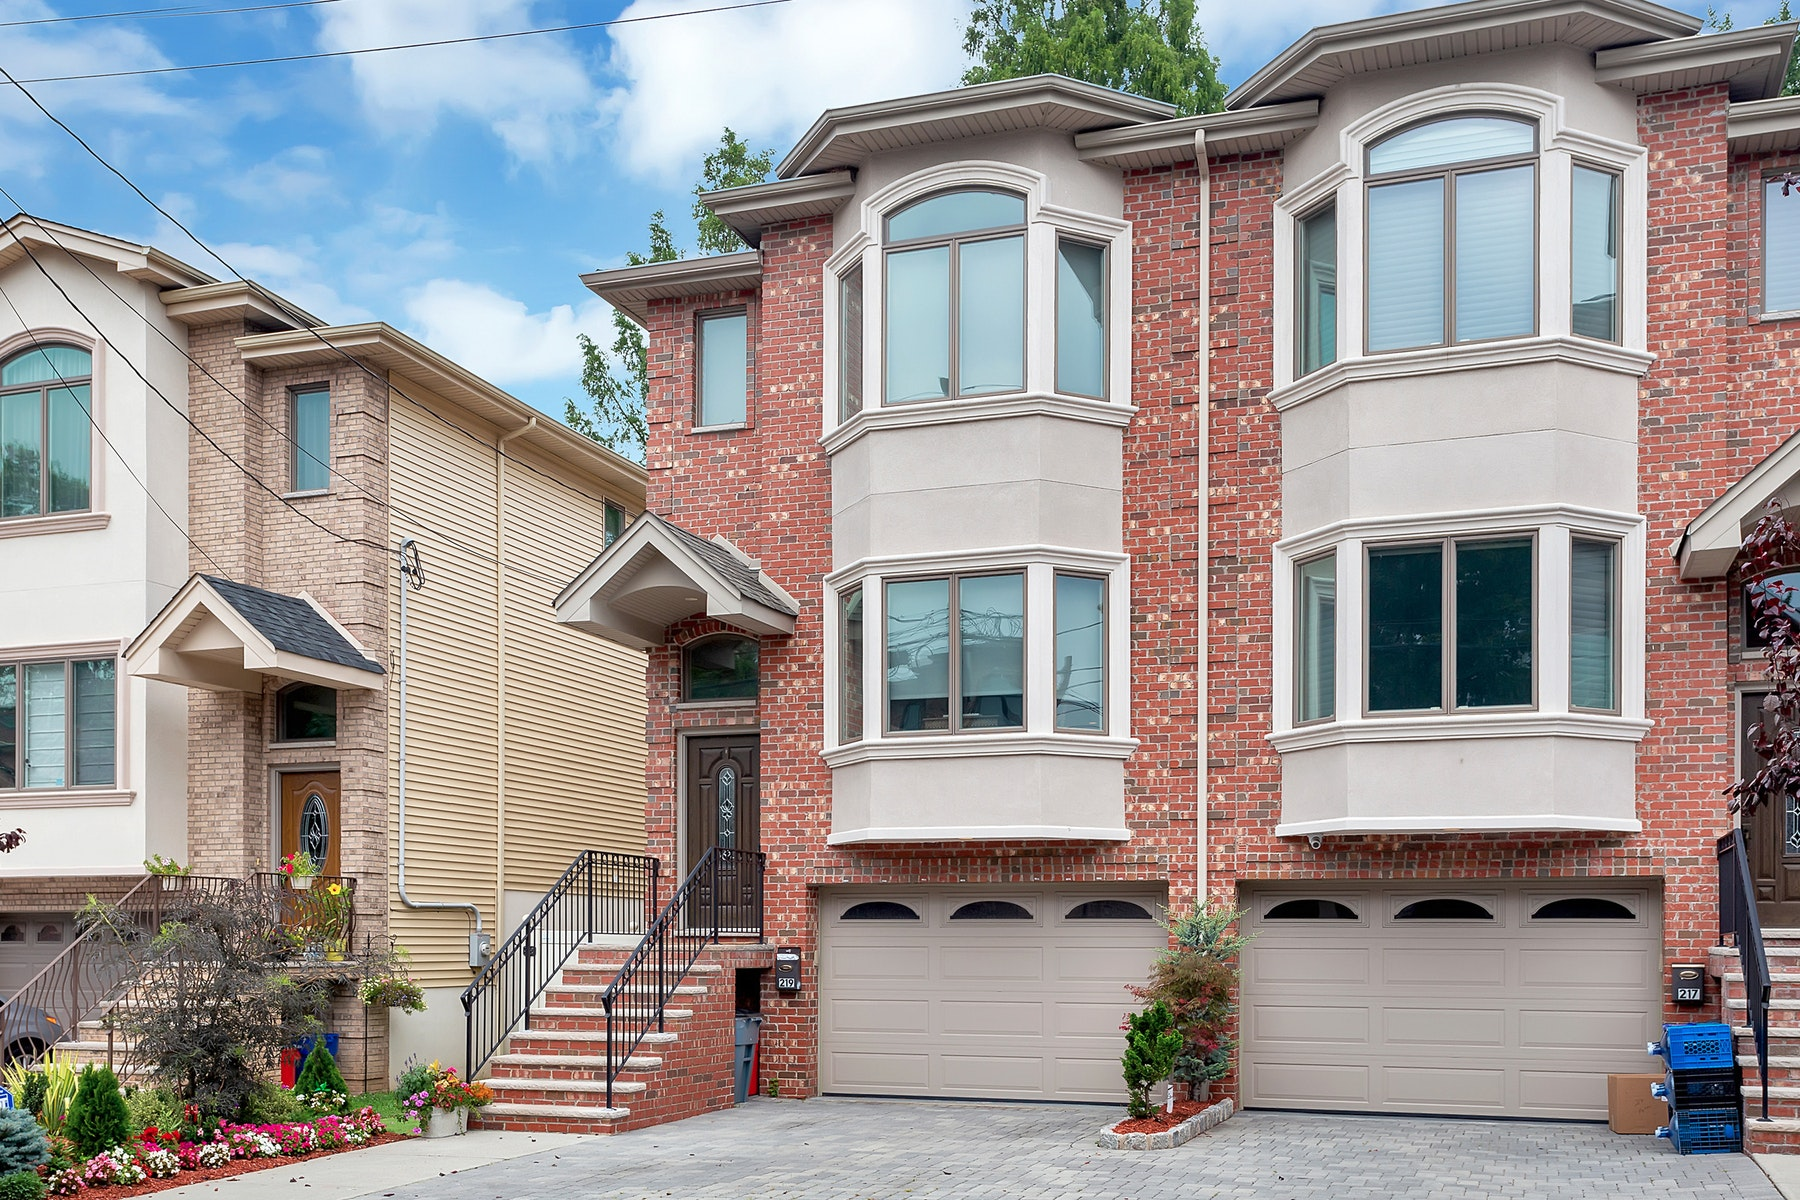 Single Family Homes for Sale at Upgraded Brick Townhouse 219 Knox Avenue Cliffside Park, New Jersey 07010 United States